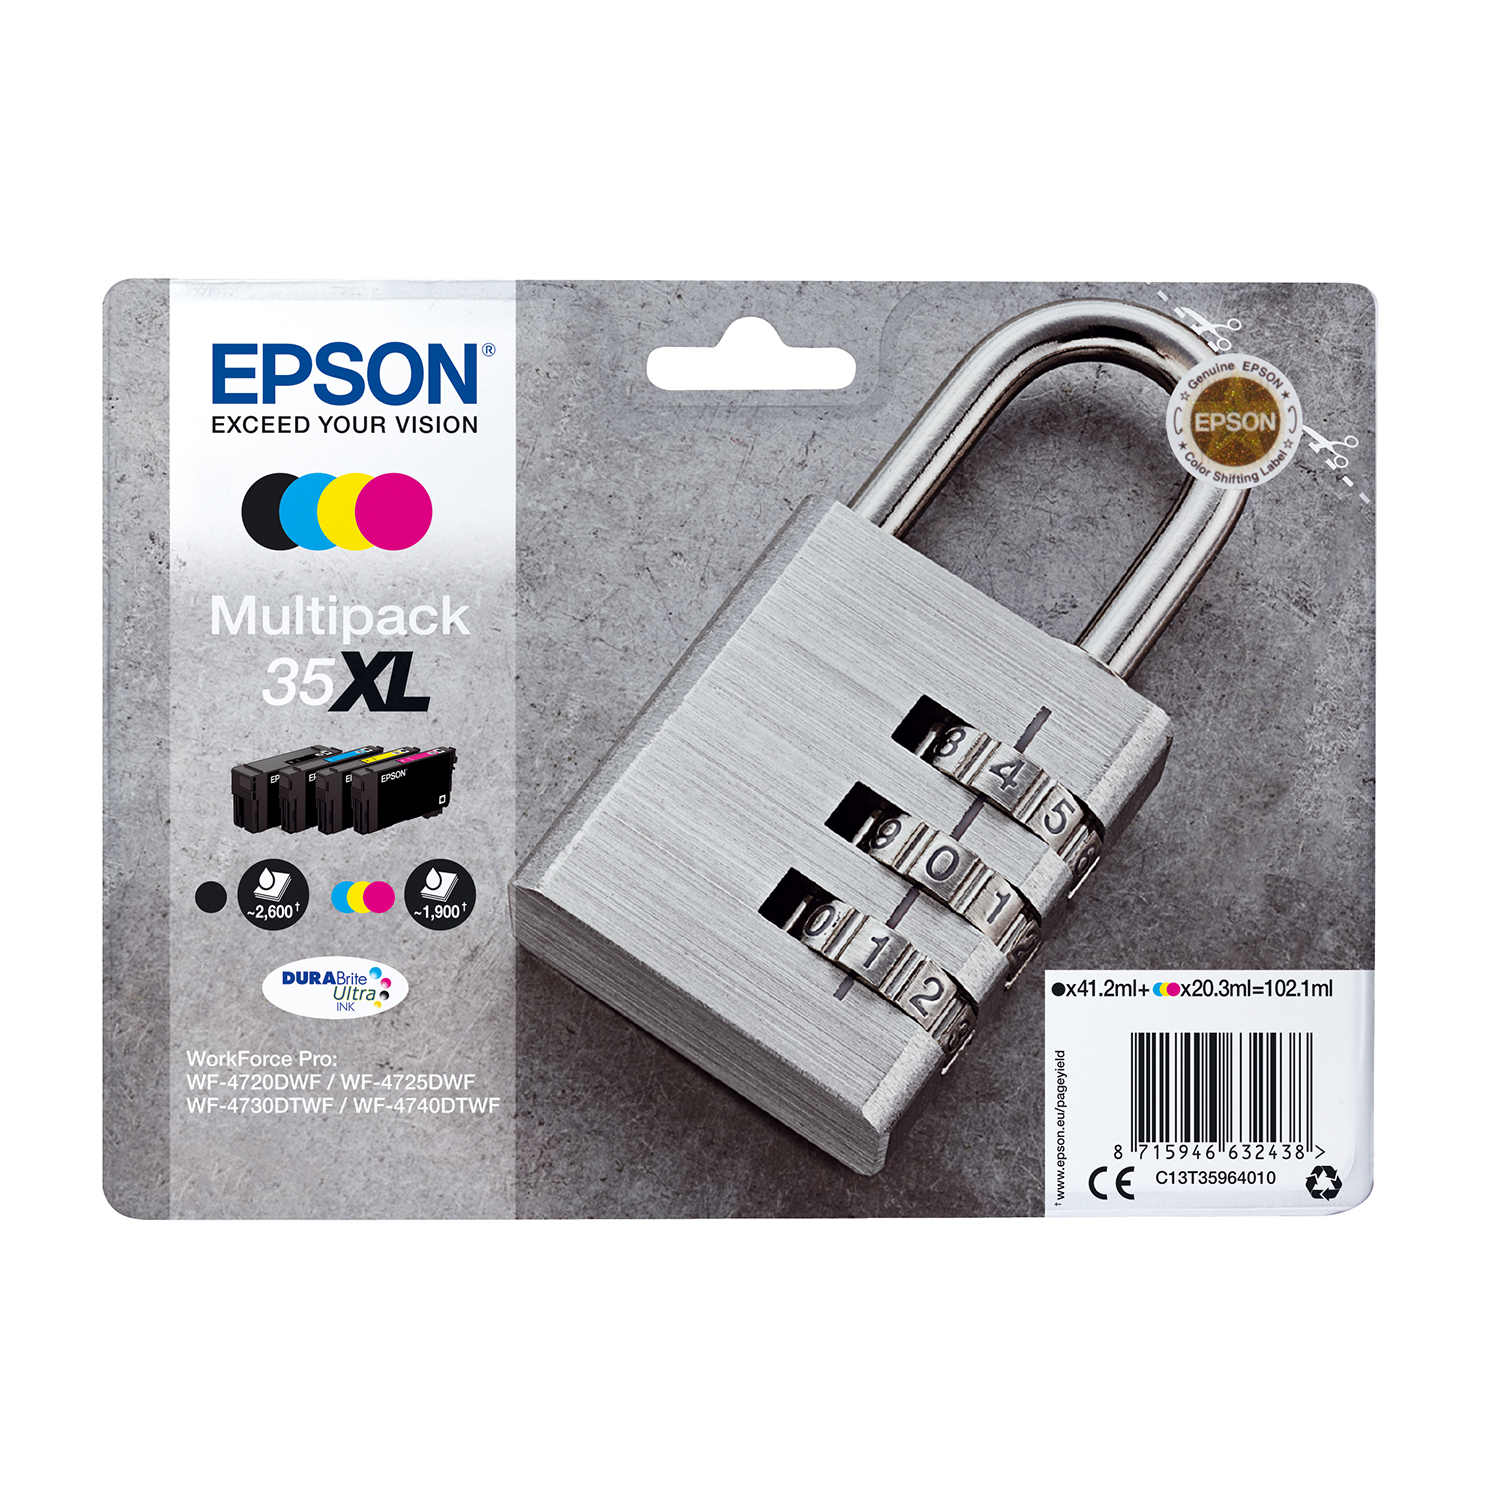 Ink cartridges Epson 35XL Inkjet Cartridge High Yield Page Life 2600/1900pp 102.1ml B/C/M/Y Ref C13T35964010 [Pack 4]